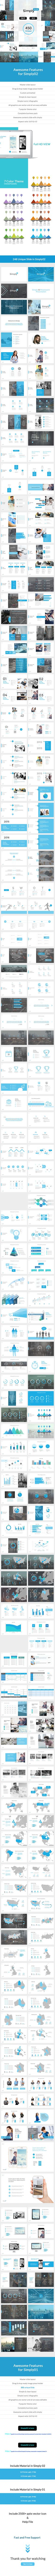 Simply Business Presentation Bundle - Business PowerPoint Templates Download here: https://graphicriver.net/item/simply-business-presentation-bundle/17789893?ref=classicdesignp